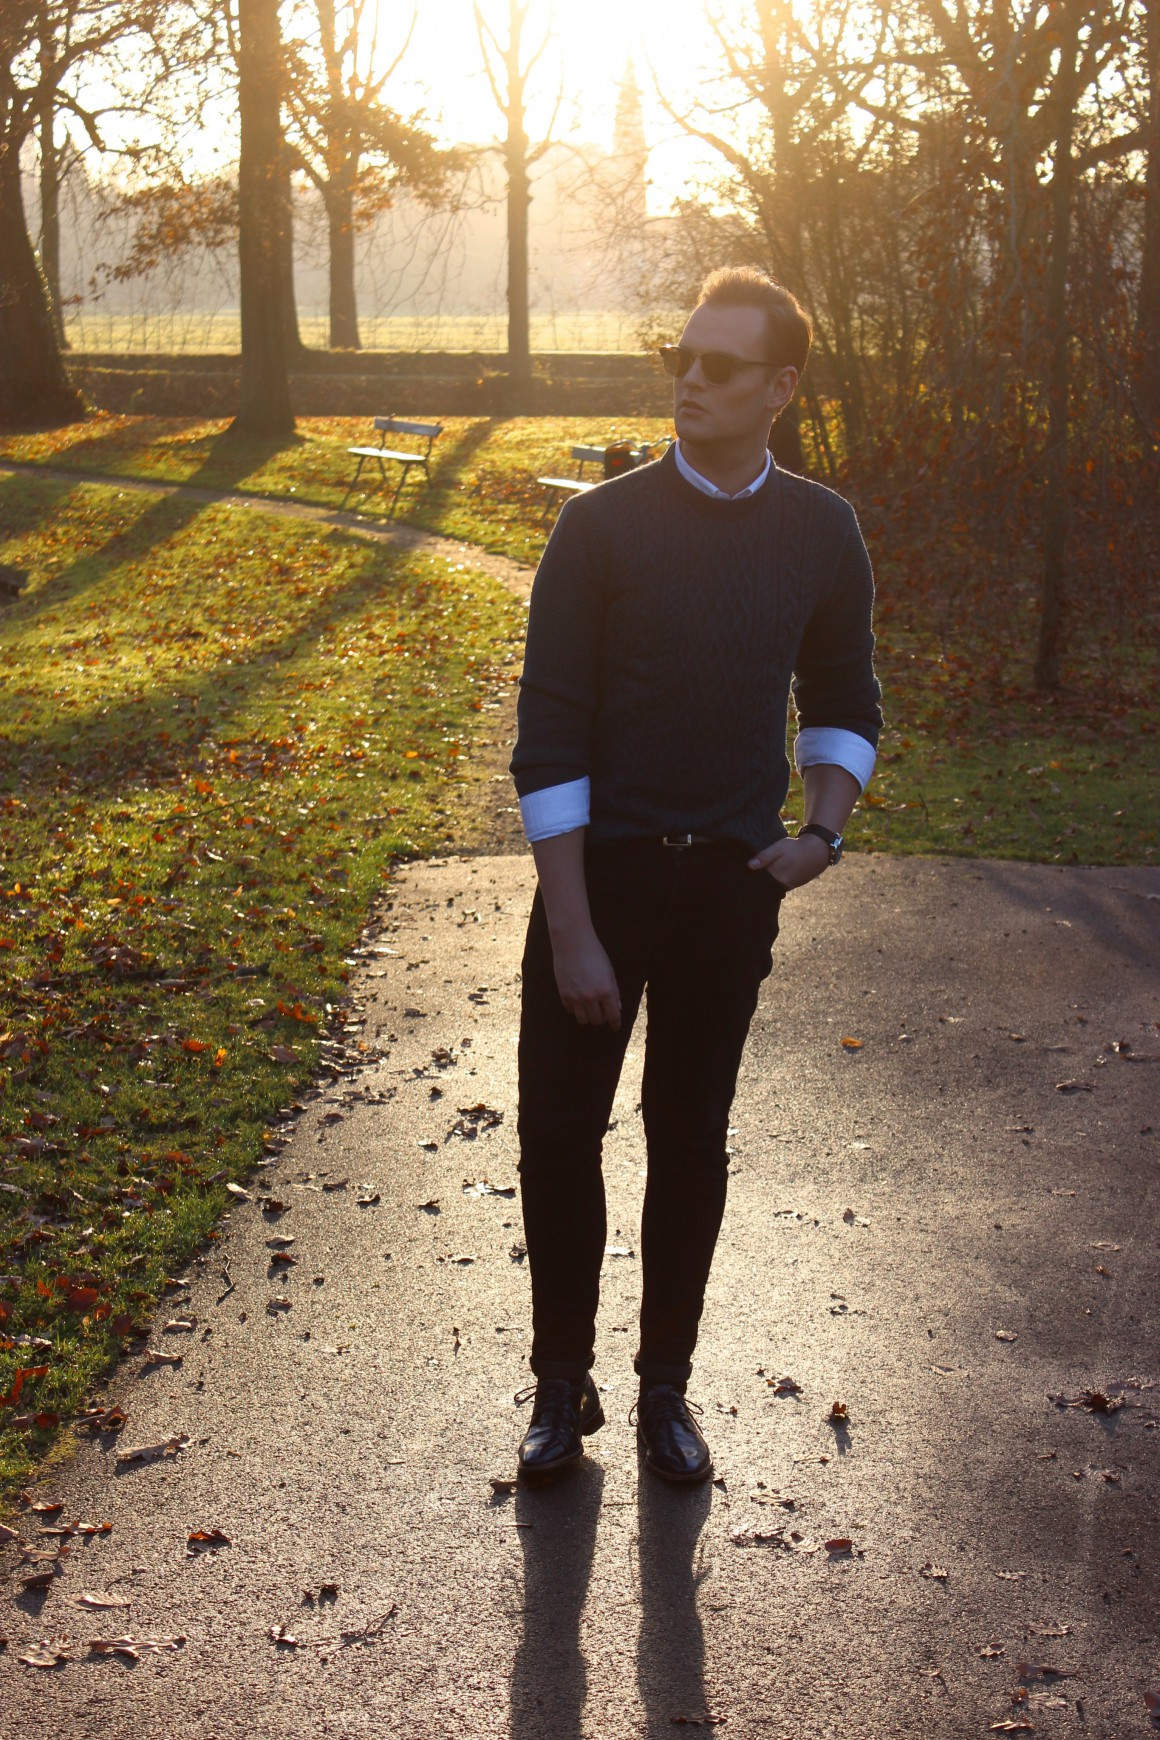 Sunglight wearing Zara knit, asos jeans, rehab shoes, tomford sunglasses JustKVN menswear and lifestyle blog